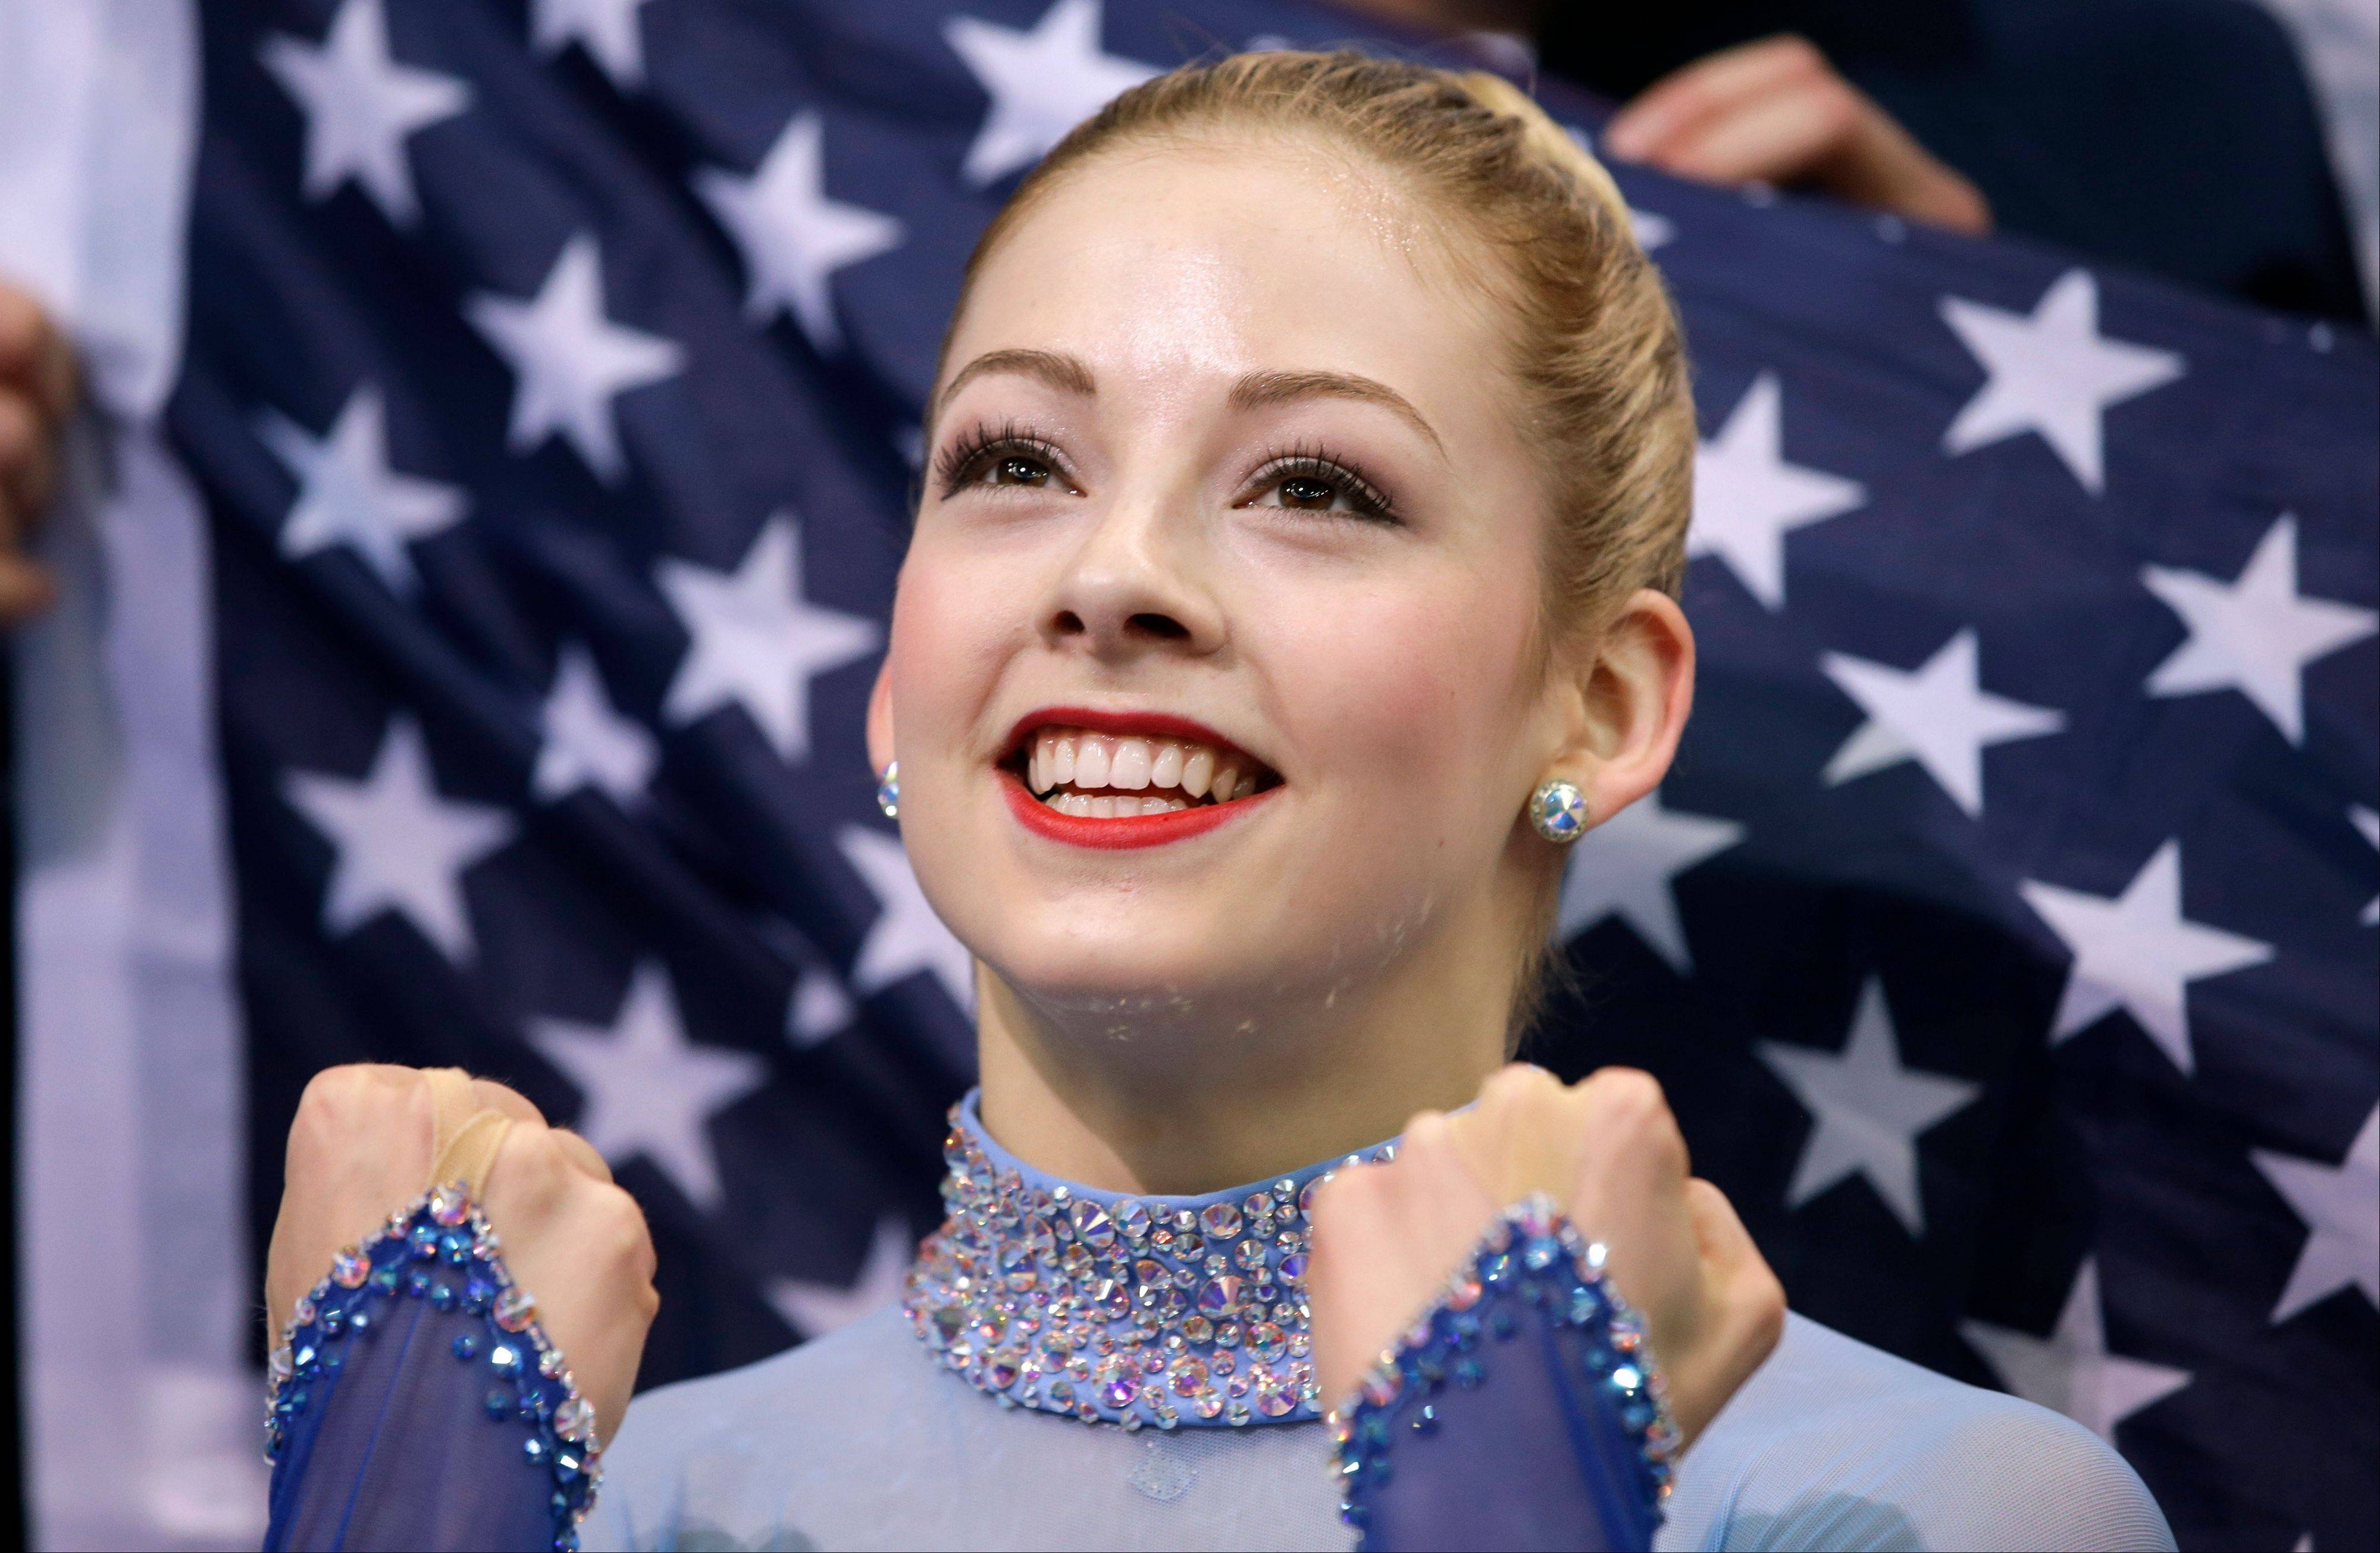 Gracie Gold of the United States reacts in the results area after competing in the women's team free skate figure skating competition at the Iceberg Skating Palace during the 2014 Winter Olympics, Sunday, Feb. 9, 2014, in Sochi, Russia.